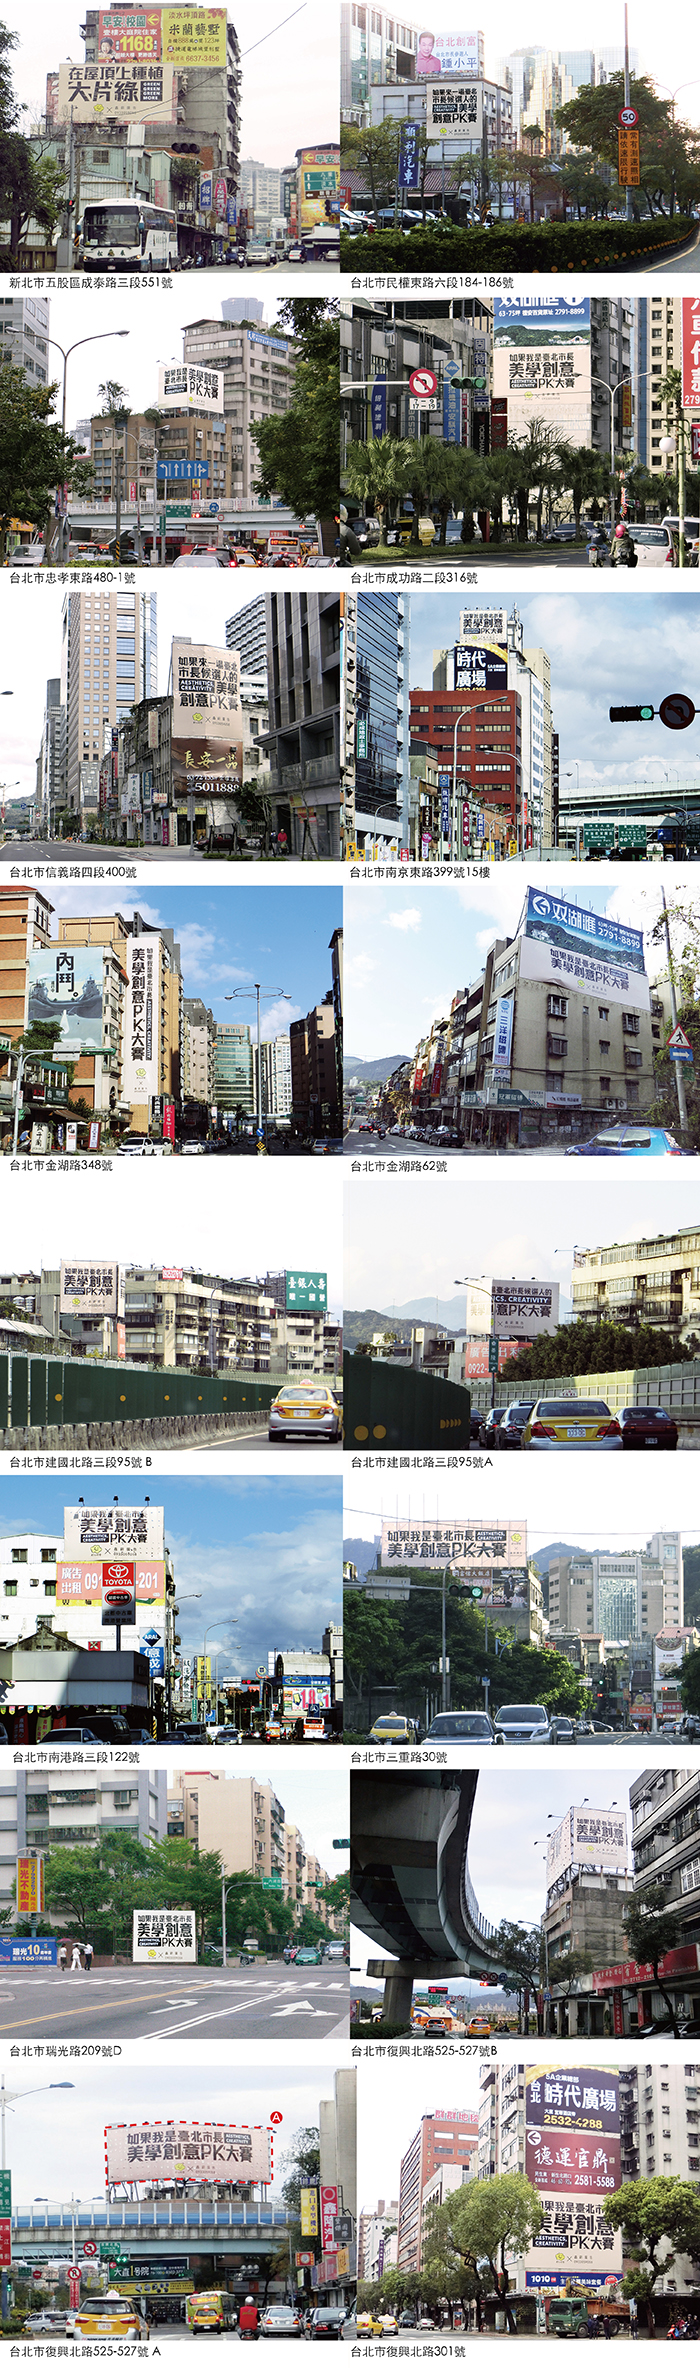 都市酵母, 水越設計, city yeast, AGUA Design, 臺北市長, Taipei Mayor, 臺北世界設計之都, world design capital, 美學創意, AESTHETICS, CREATIVITY